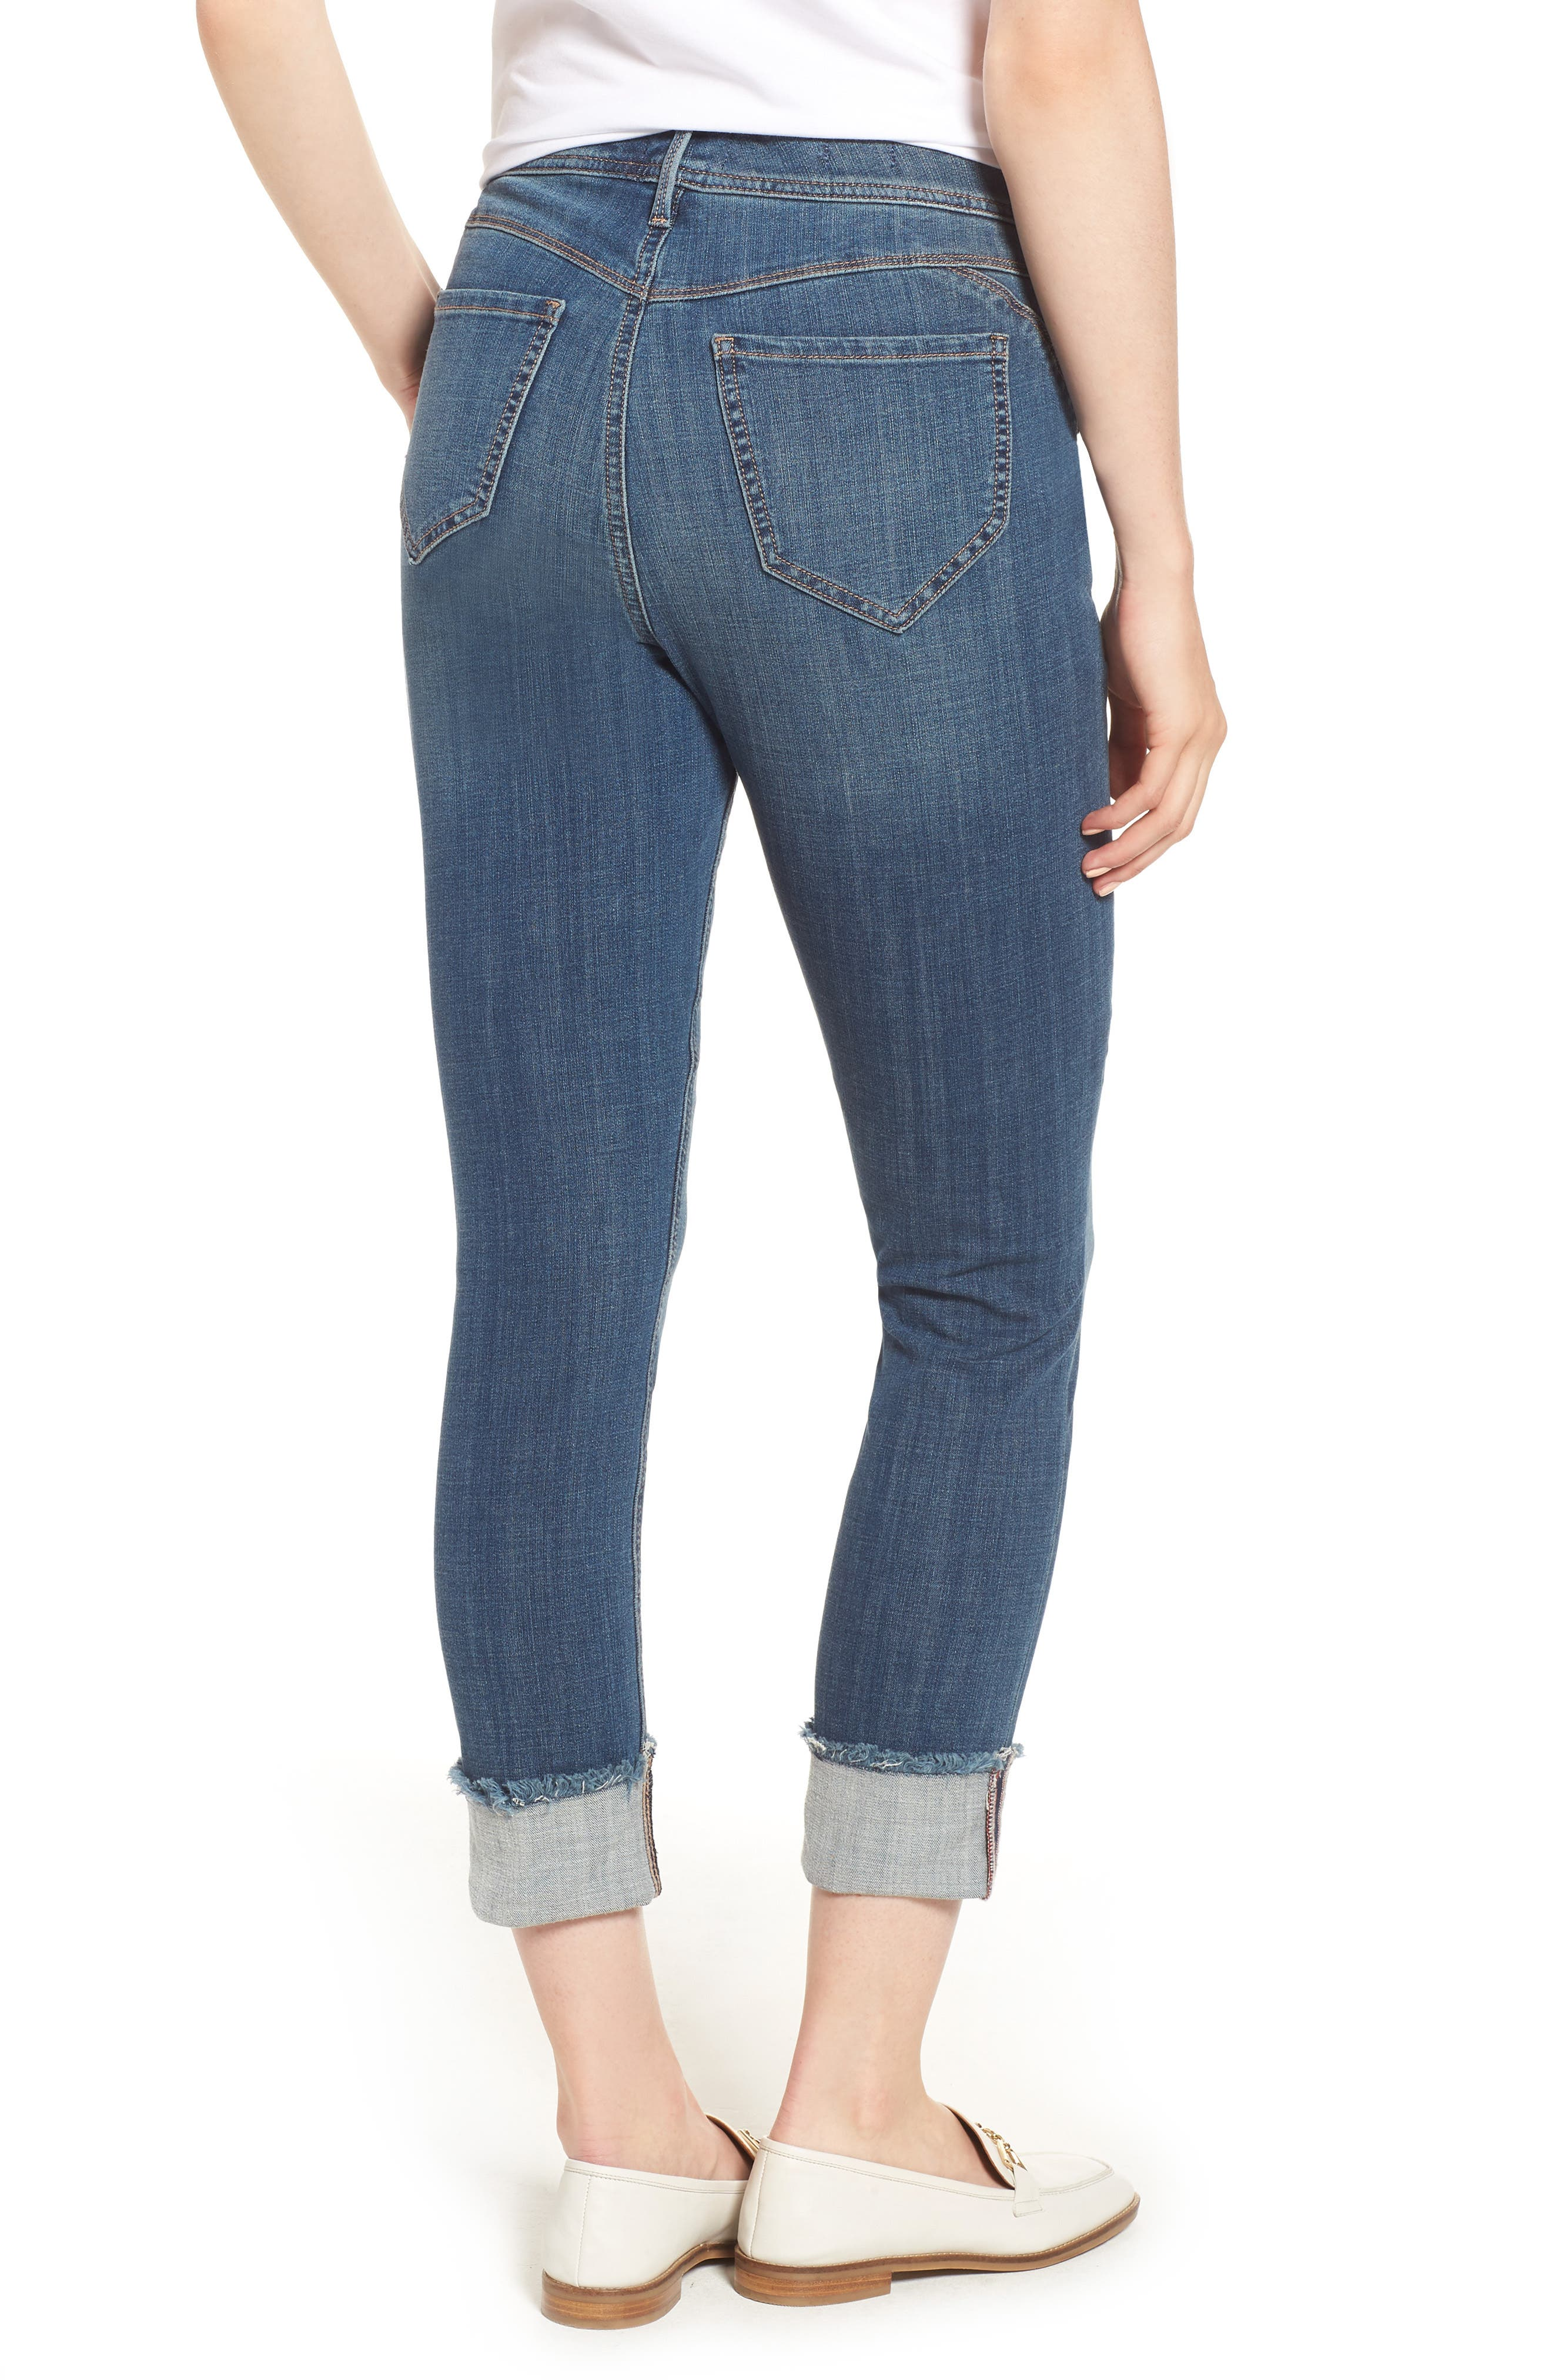 CURVES 360 BY NYDJ,                             Boost Raw Cuff Skinny Jeans,                             Alternate thumbnail 2, color,                             452